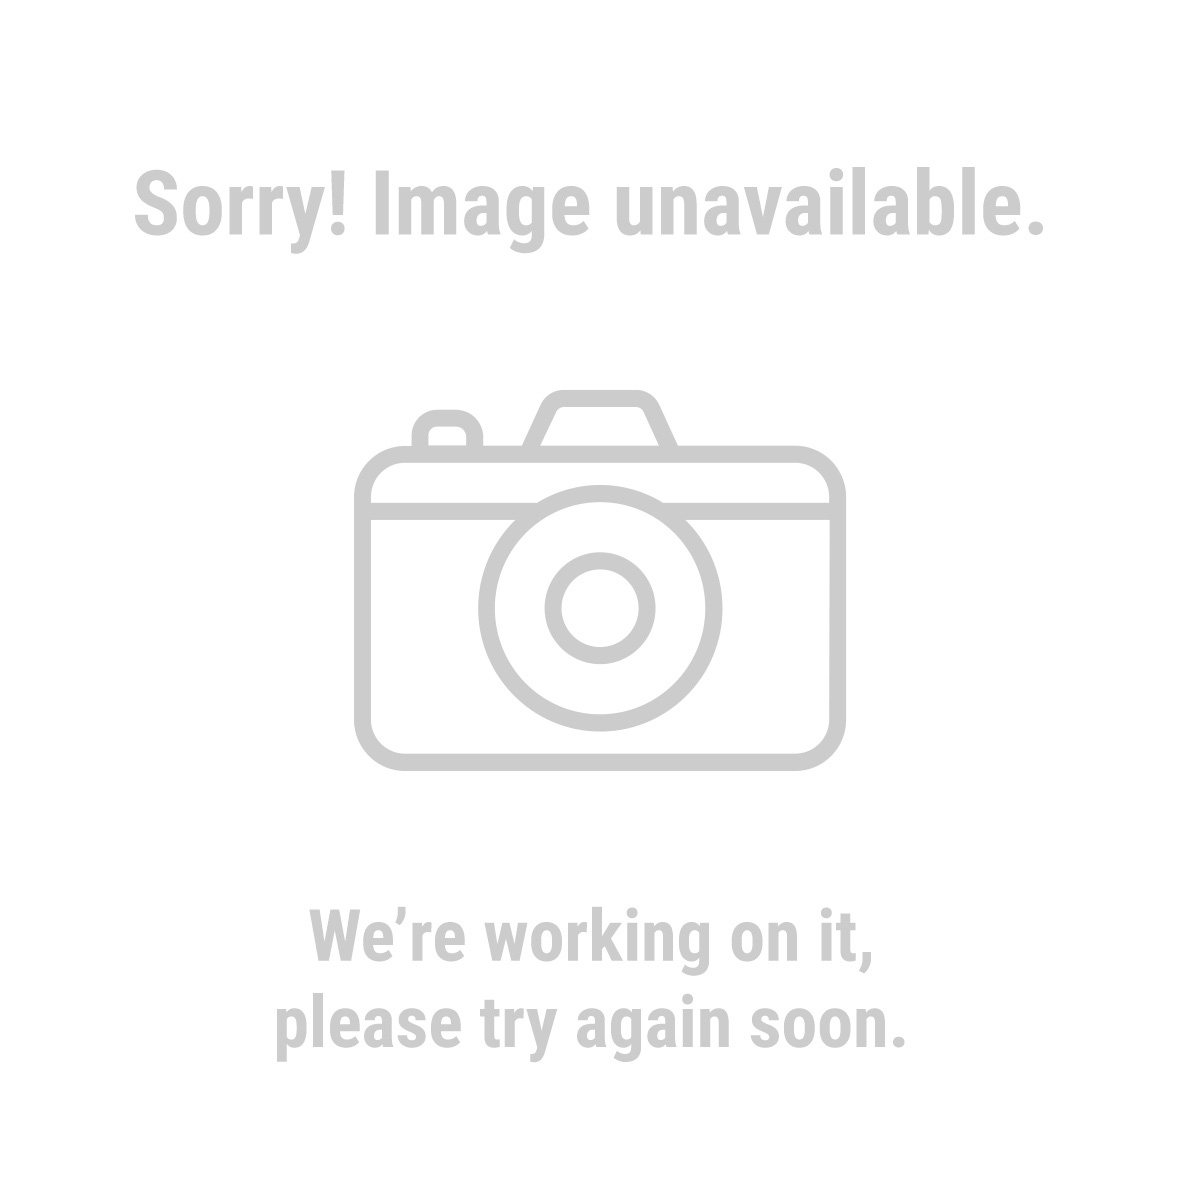 40 Piece Hose Clamp Assortment